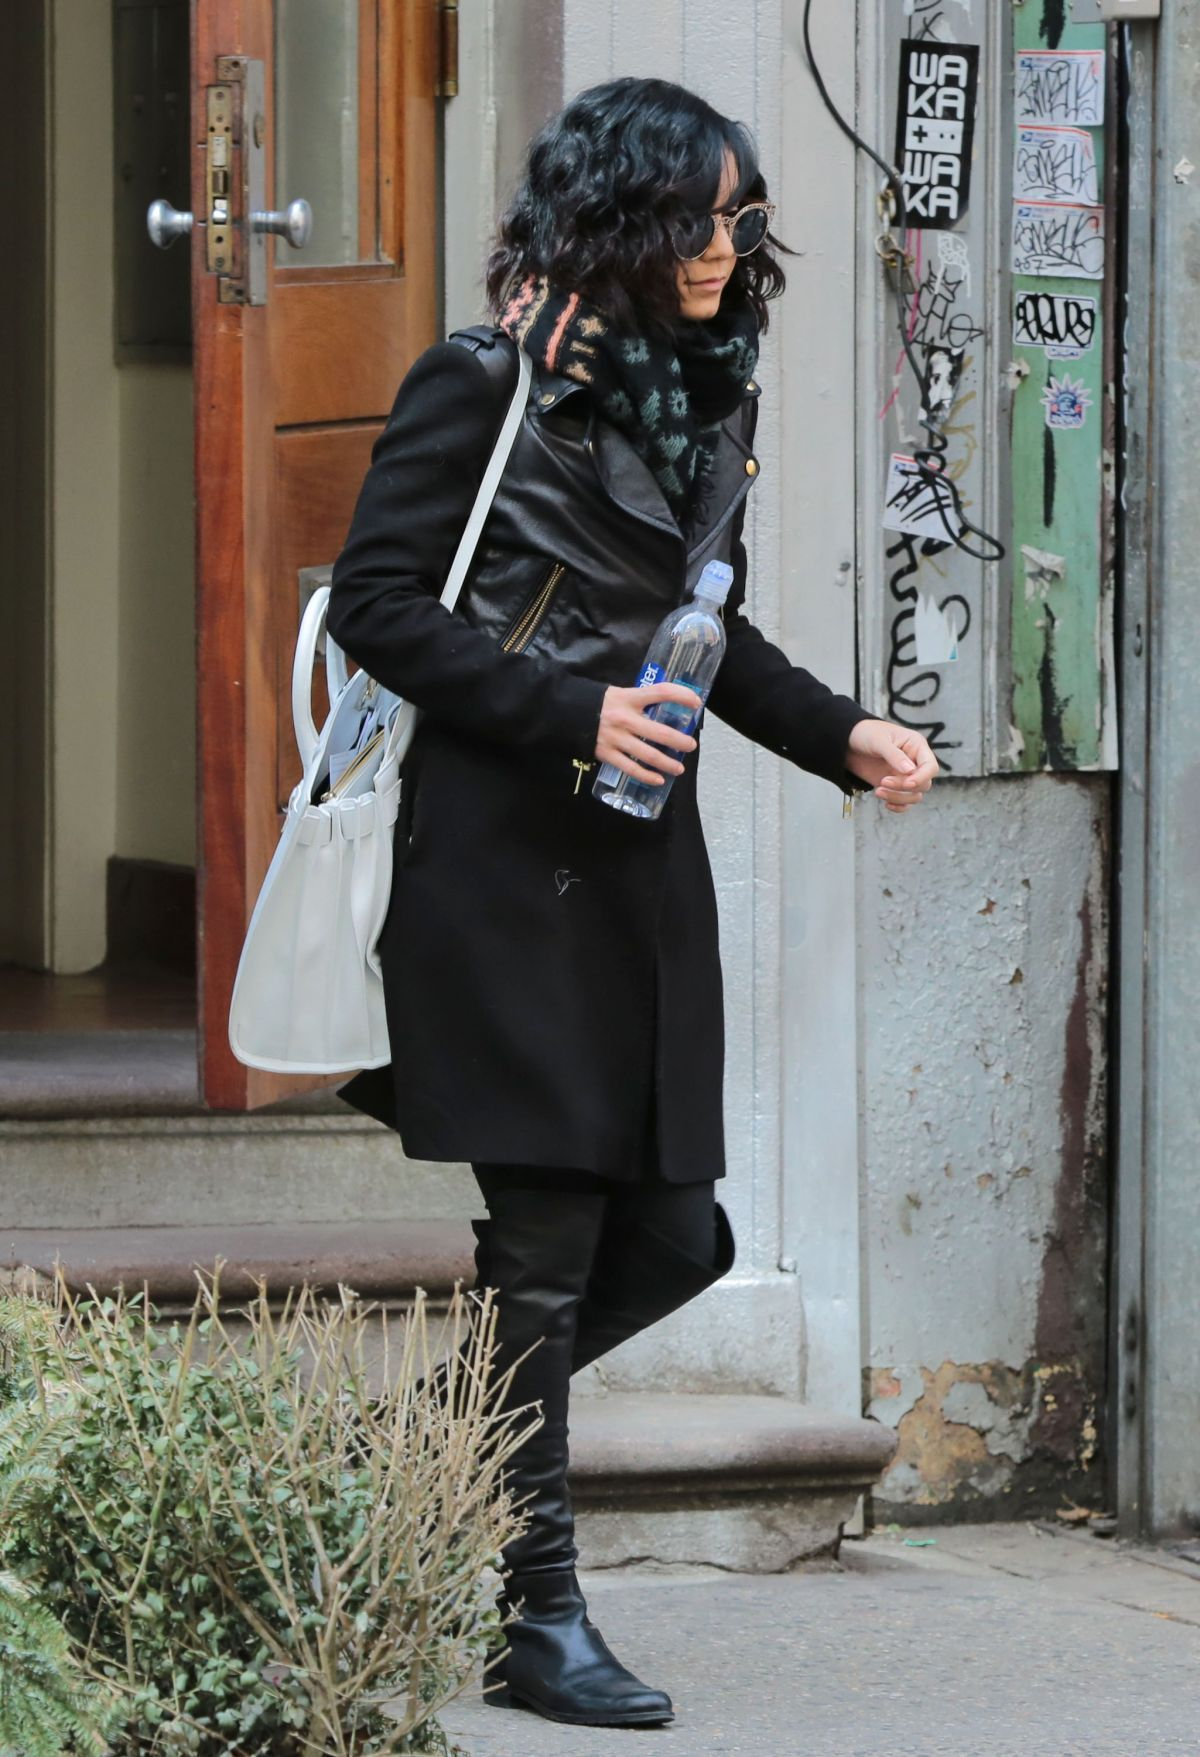 vanessa-hudgens-out-and-about-in-new-york-2503_5.jpg (1200×1757)